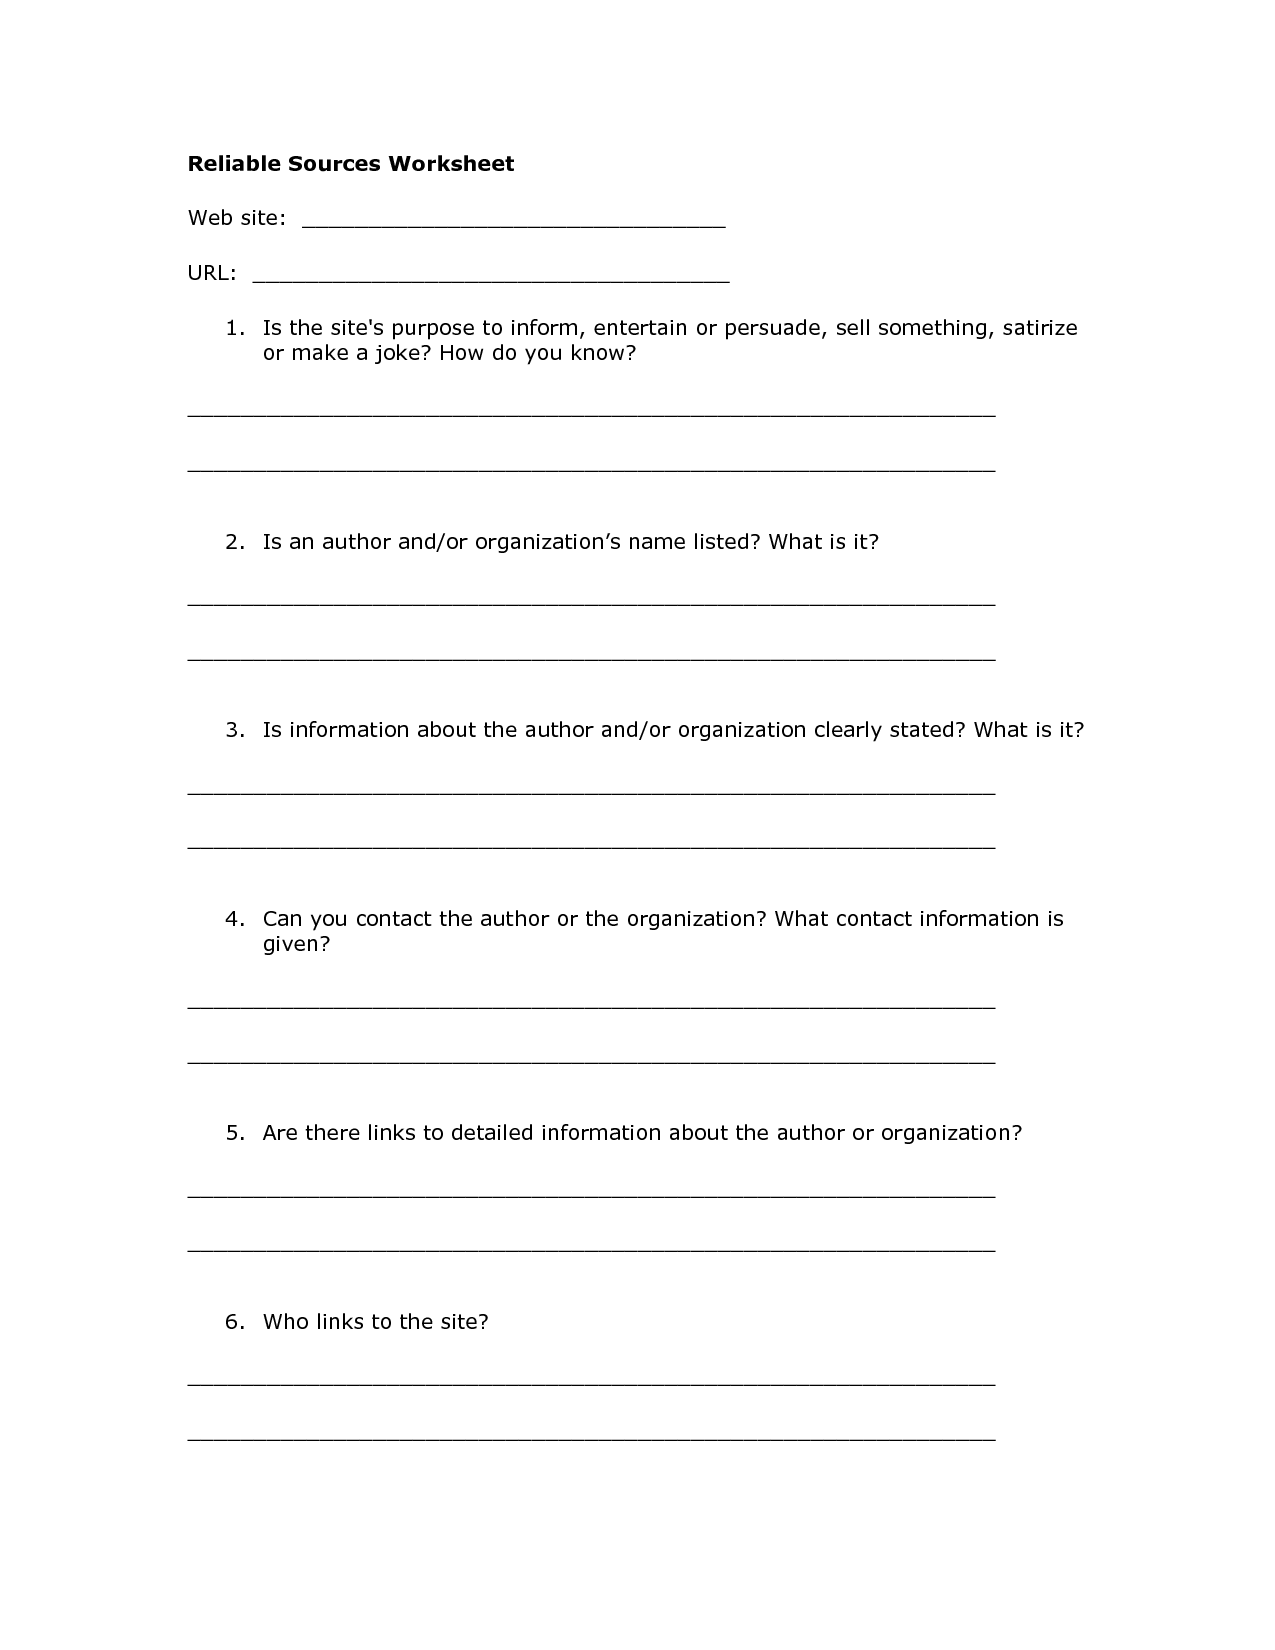 Reliable Sources Worksheet